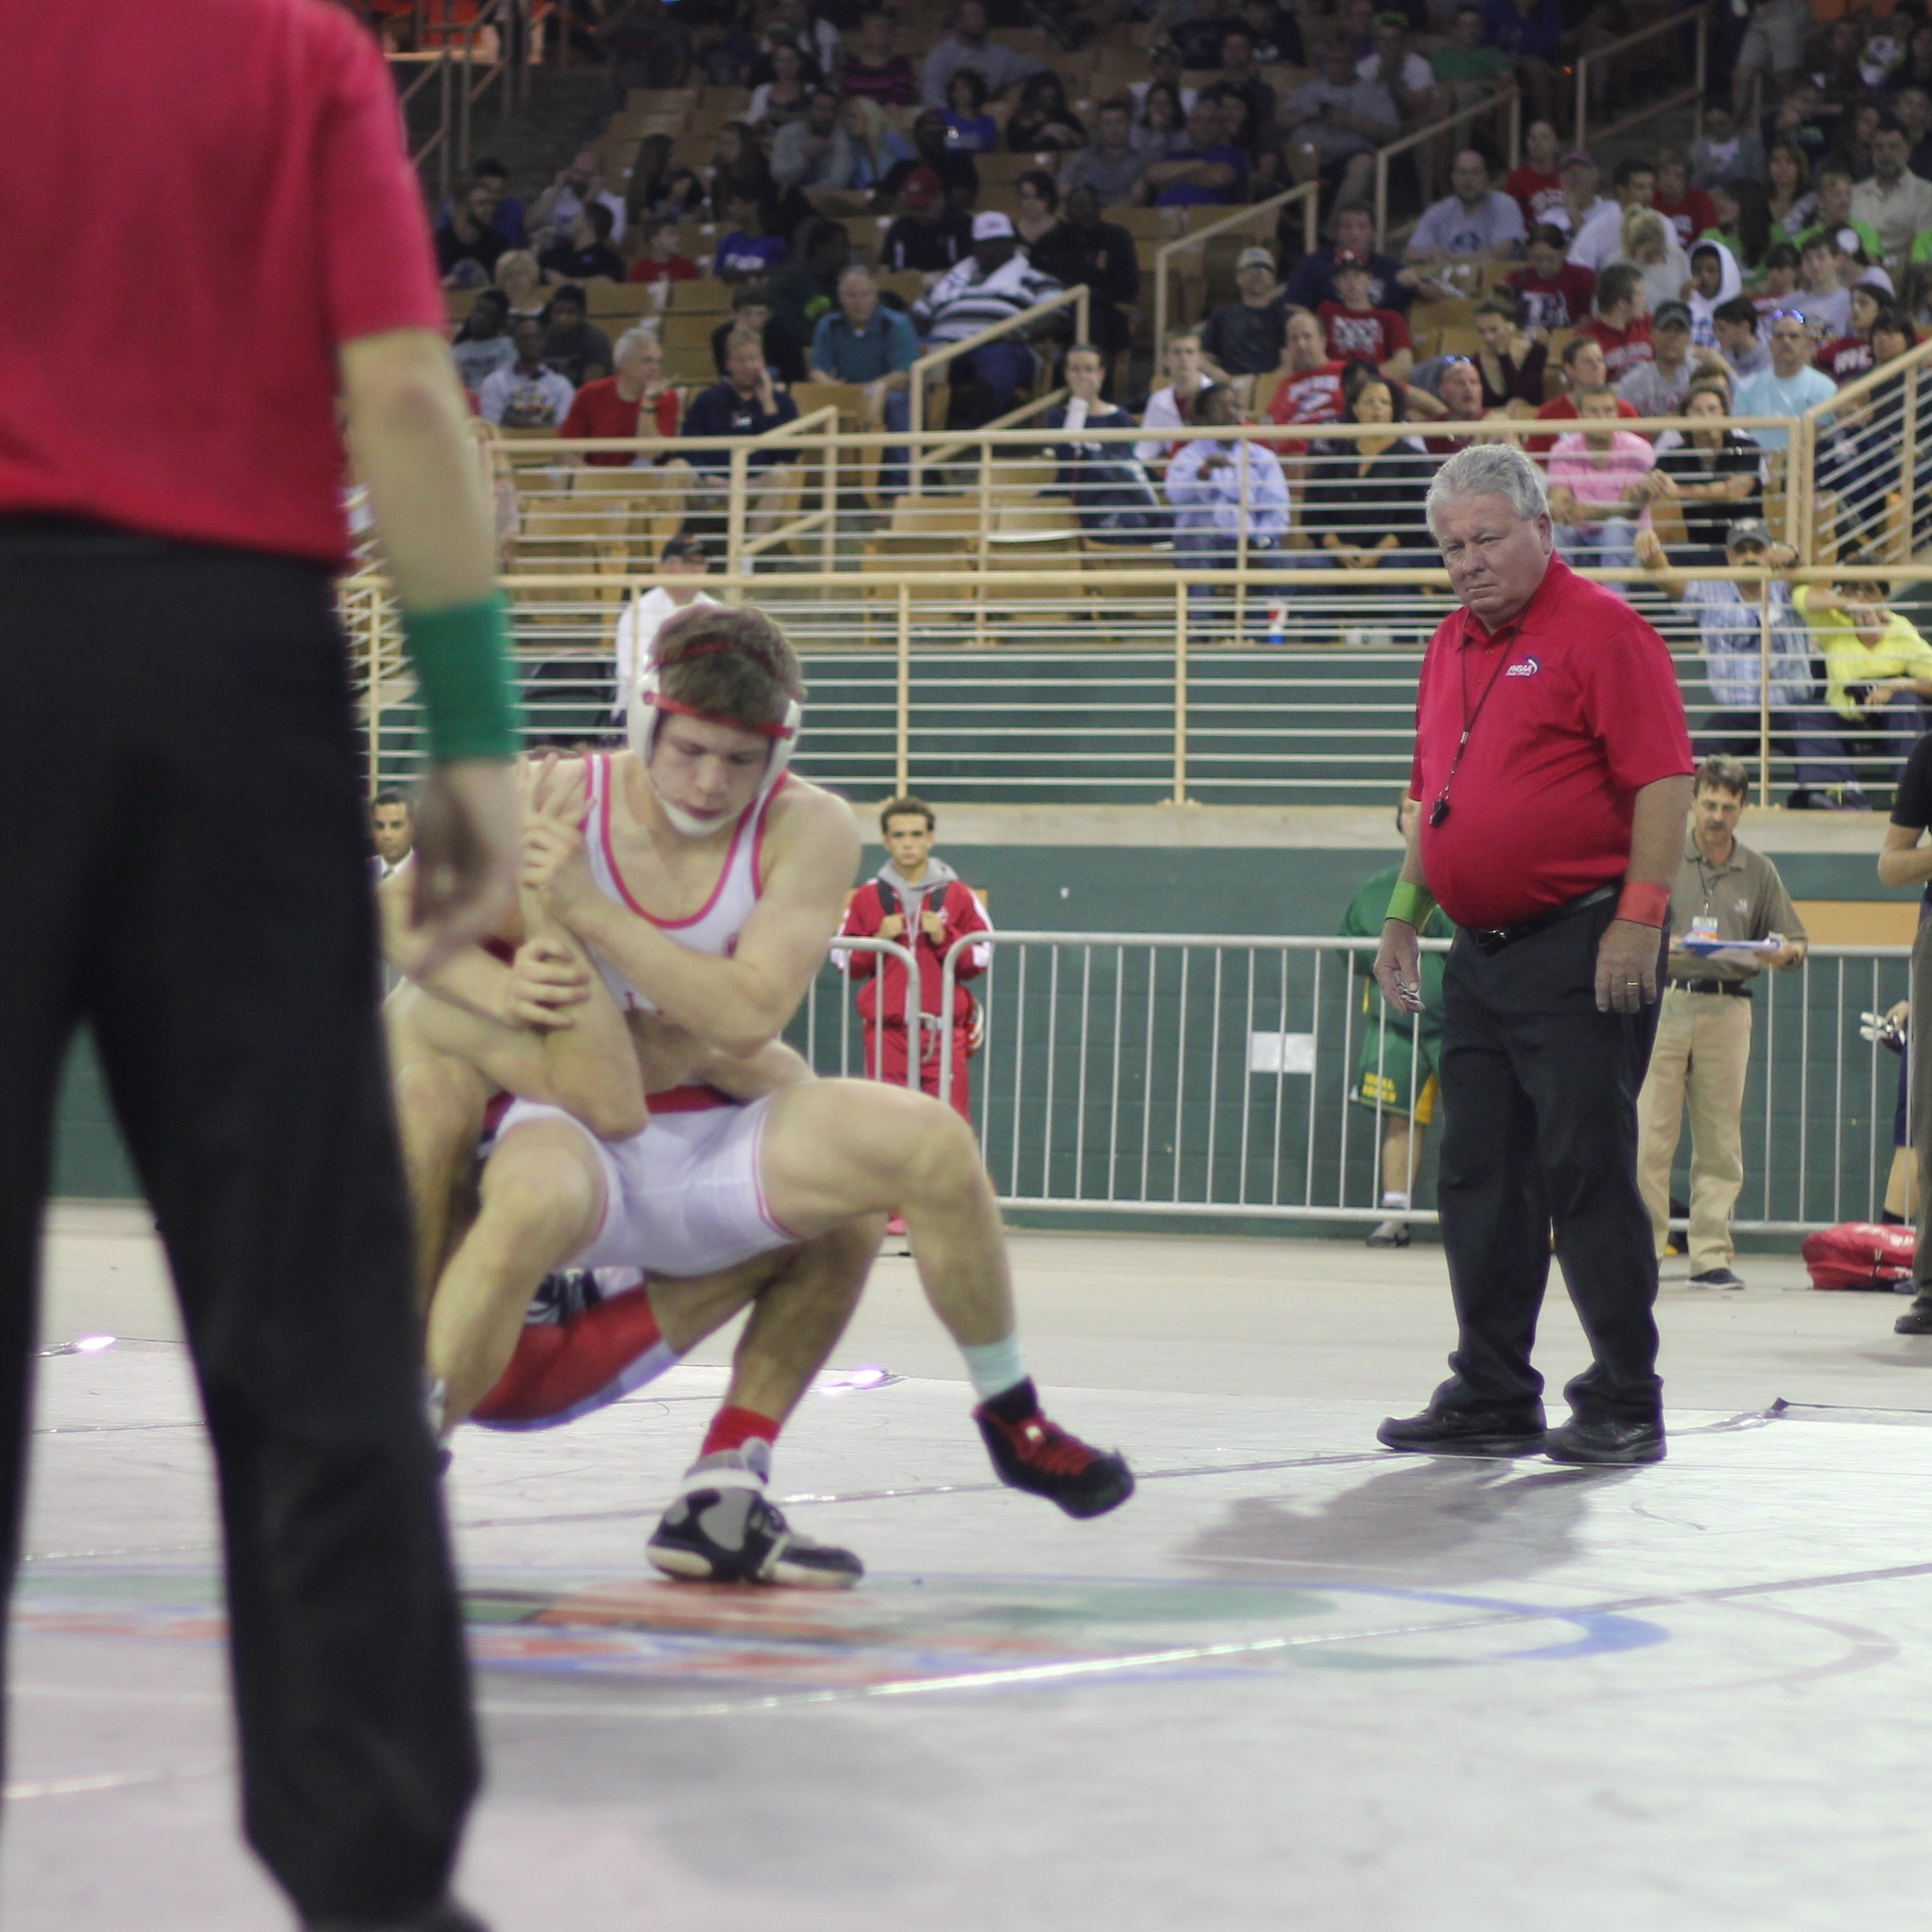 Rogers beat Byelick 5-3 ot to win the 2015 1A 145 lb. title